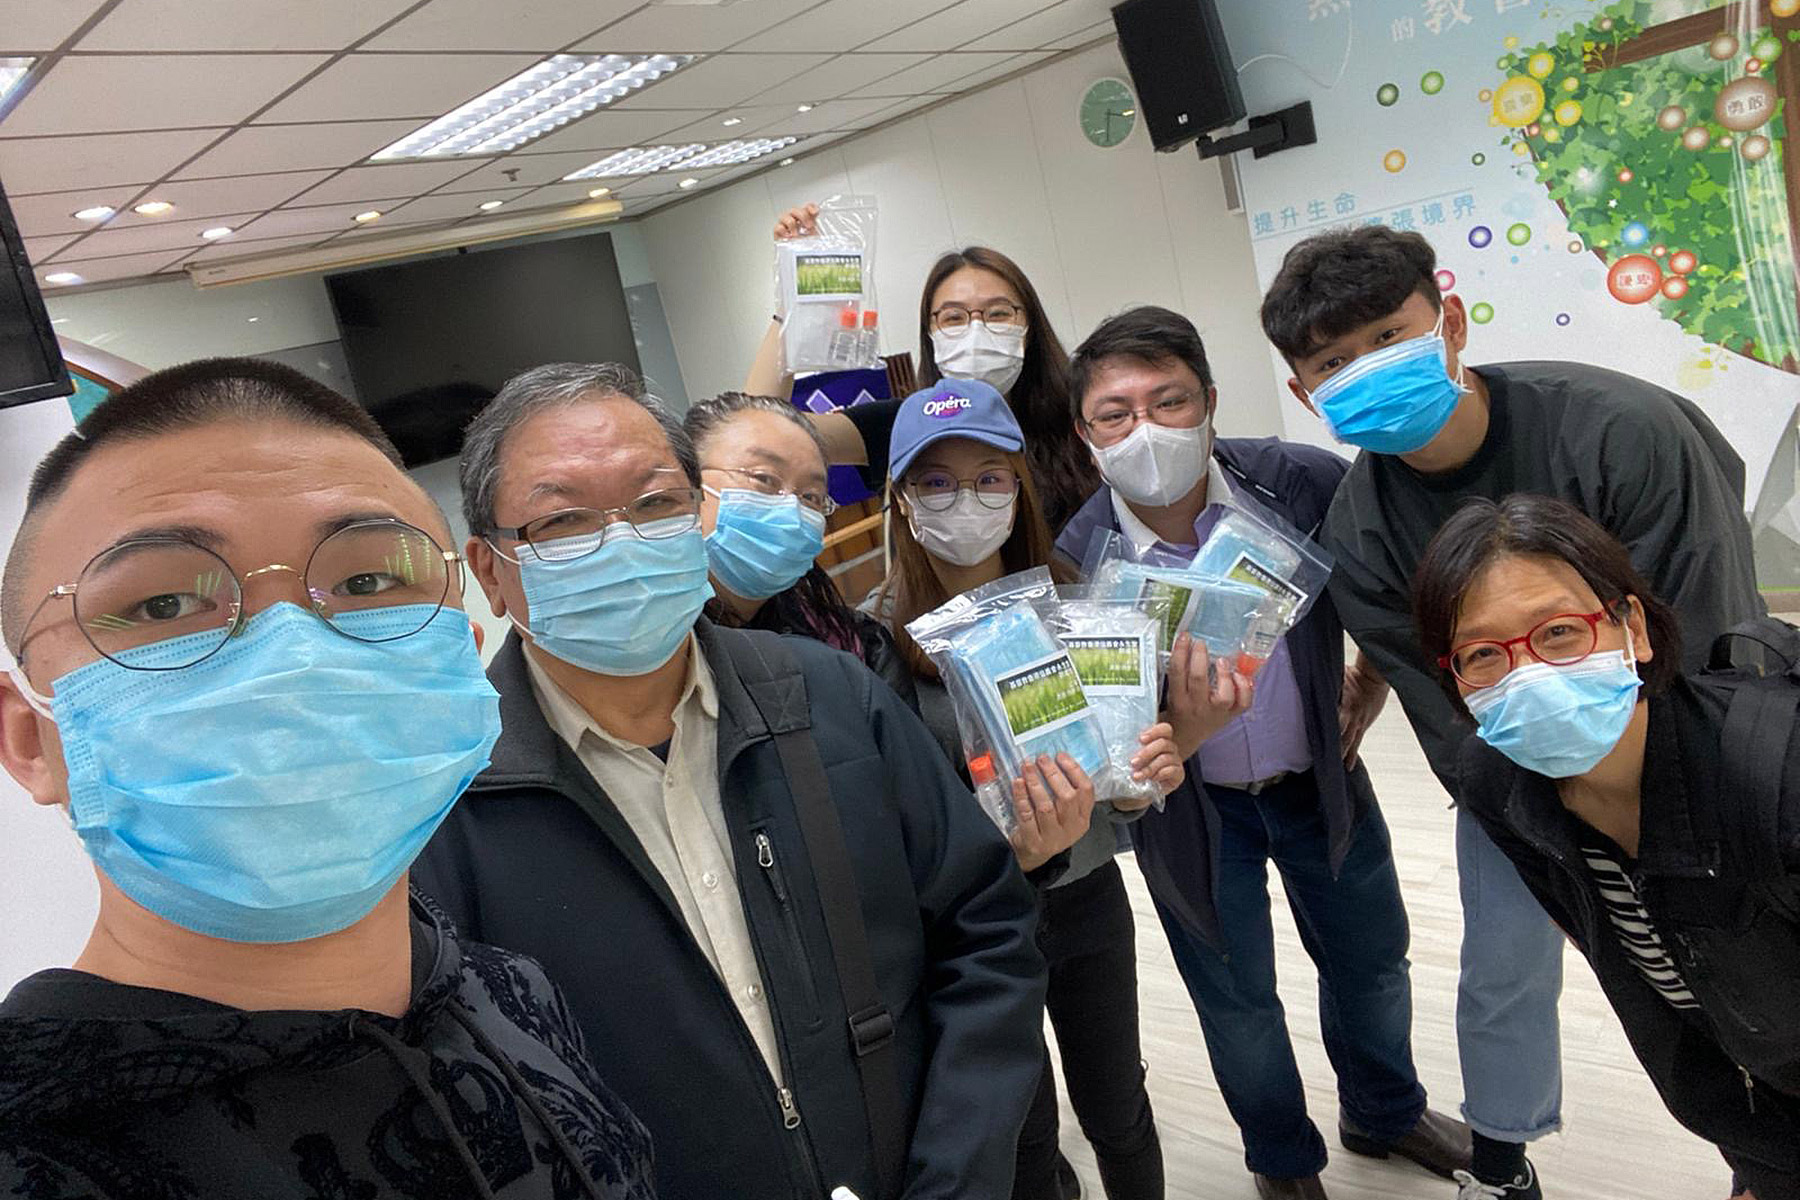 Volunteers at the Eternal Life Lutheran Church are grateful for all contributions to their outreach ministry, including face masks sent by the Lutheran Youth Network in Indonesia